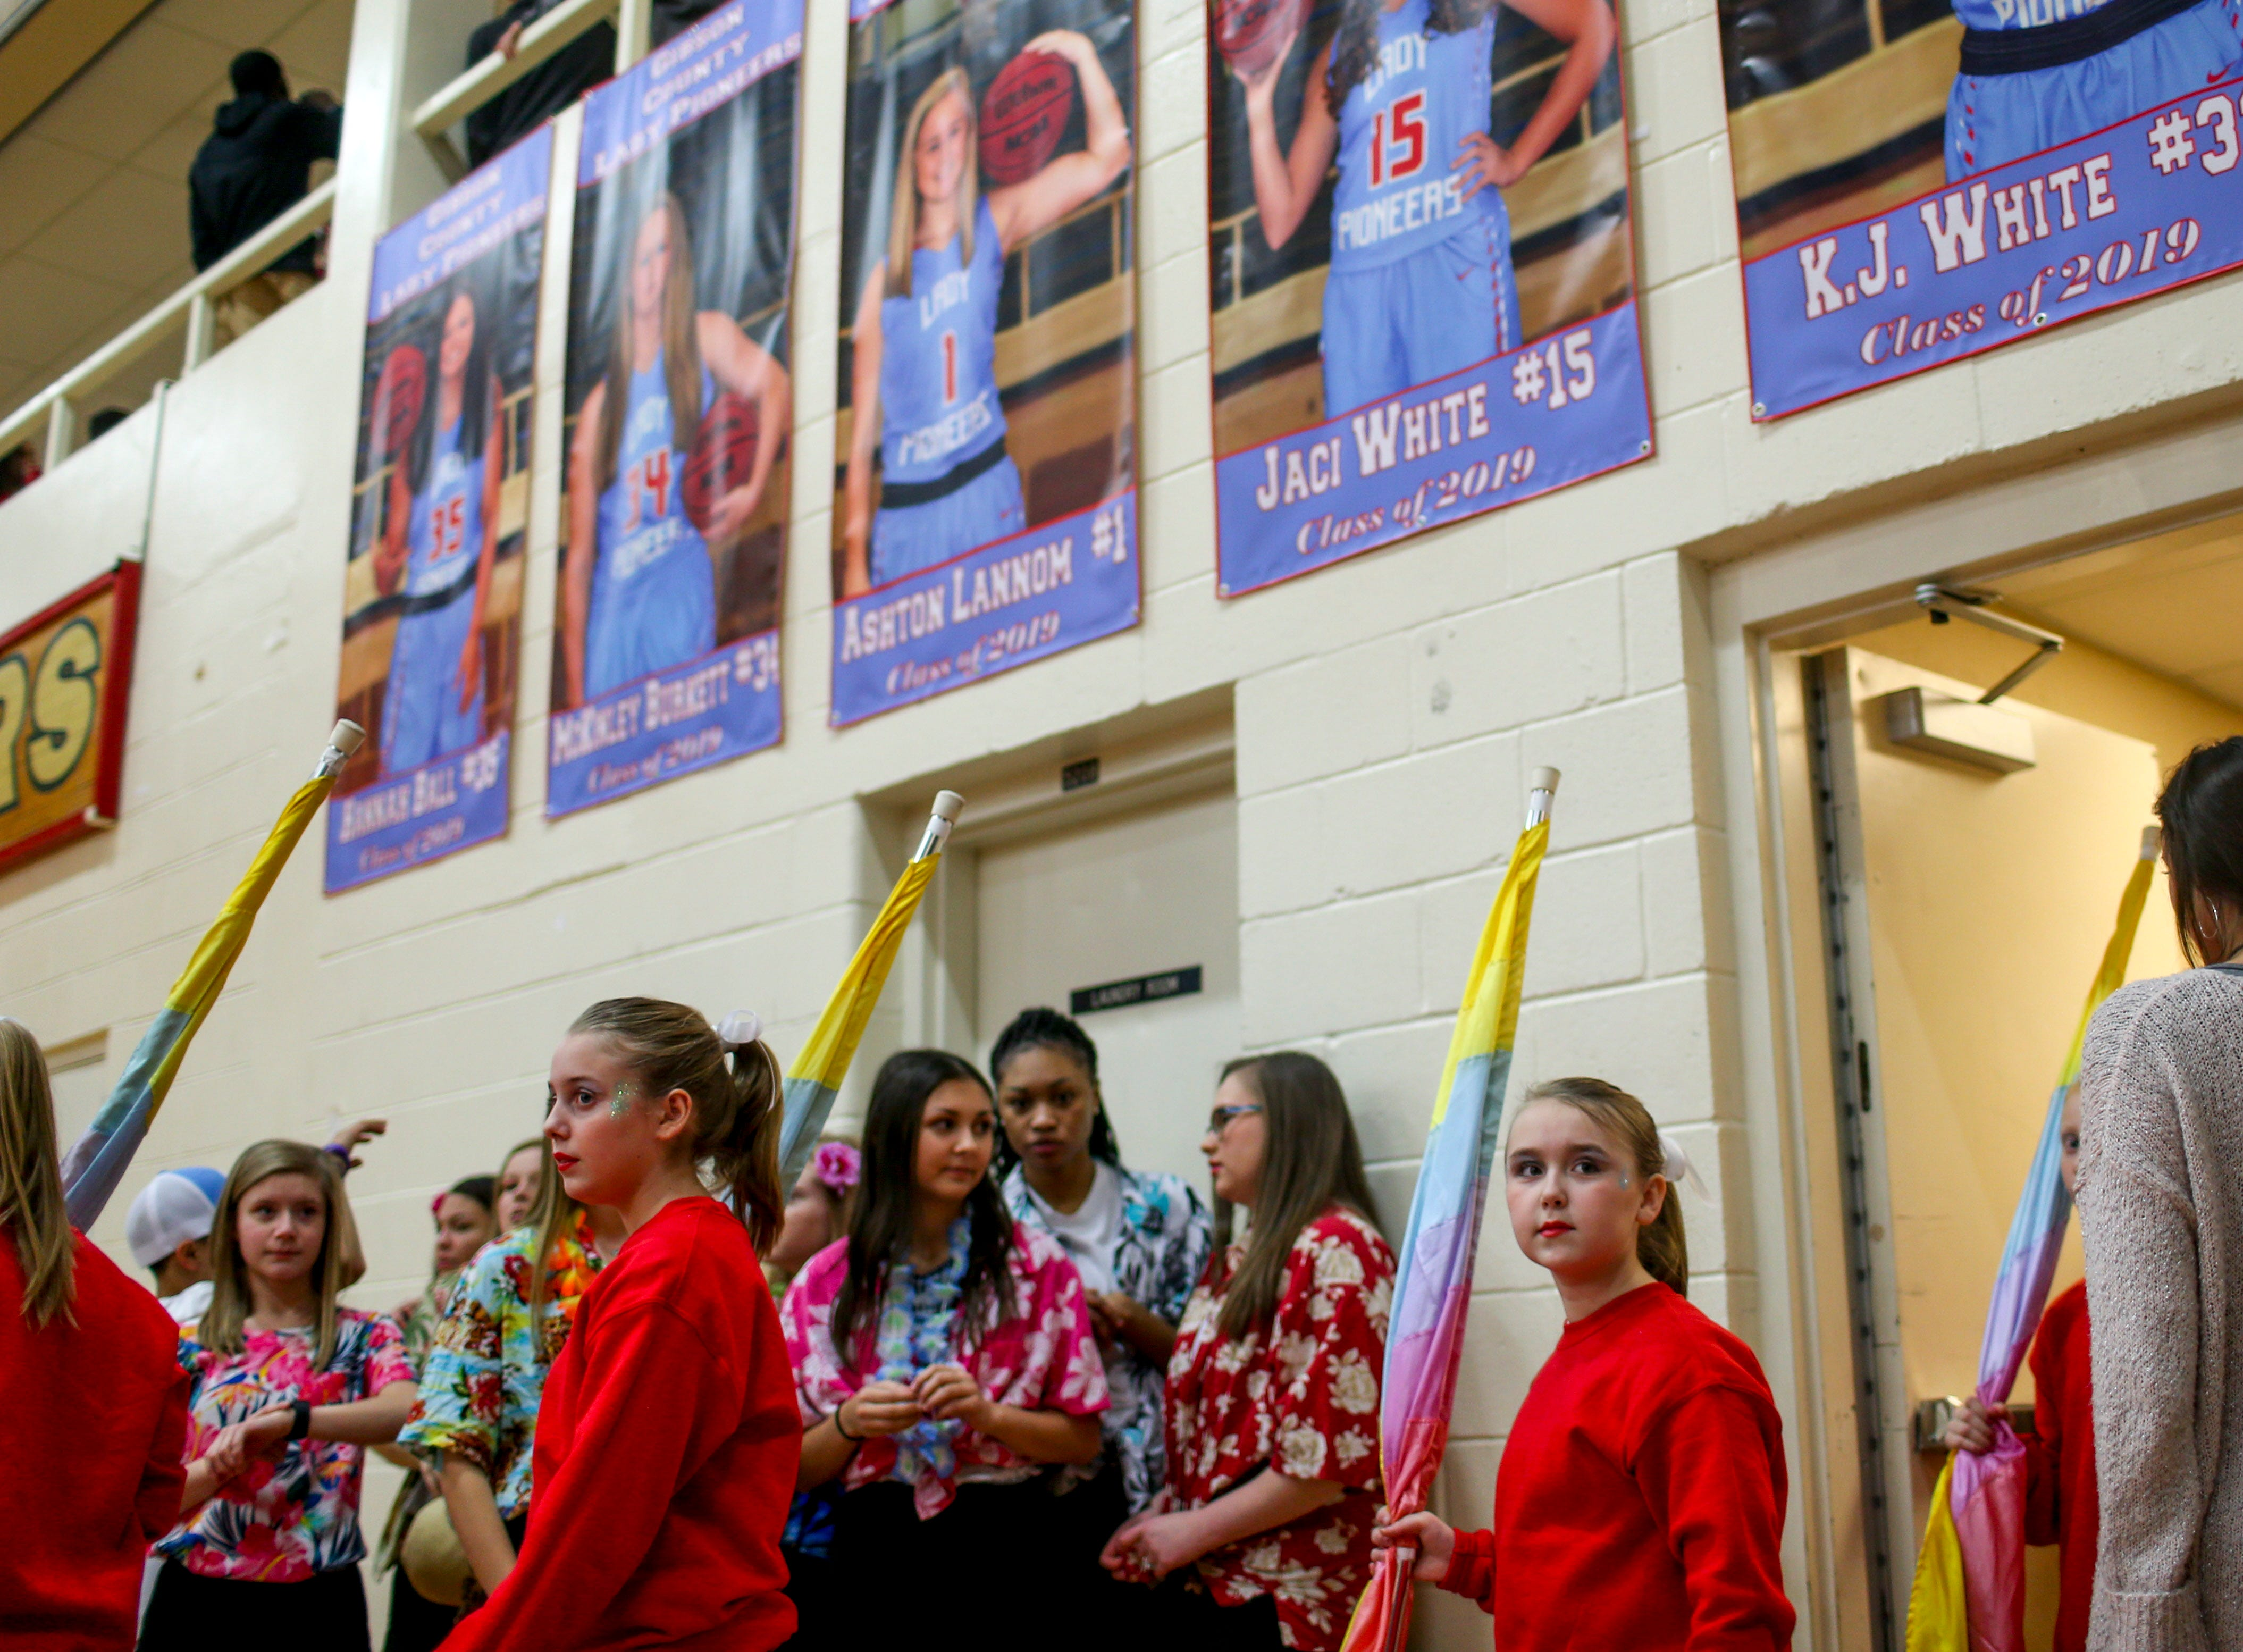 A half time performer emerges from the locker room doors and looks up at the crowd gathered at halftime in a TSSAA girls basketball game between Gibson County and Trinity Christian Academy at Gibson County High School in Dyer, Tenn., on Friday, Jan. 11, 2019.